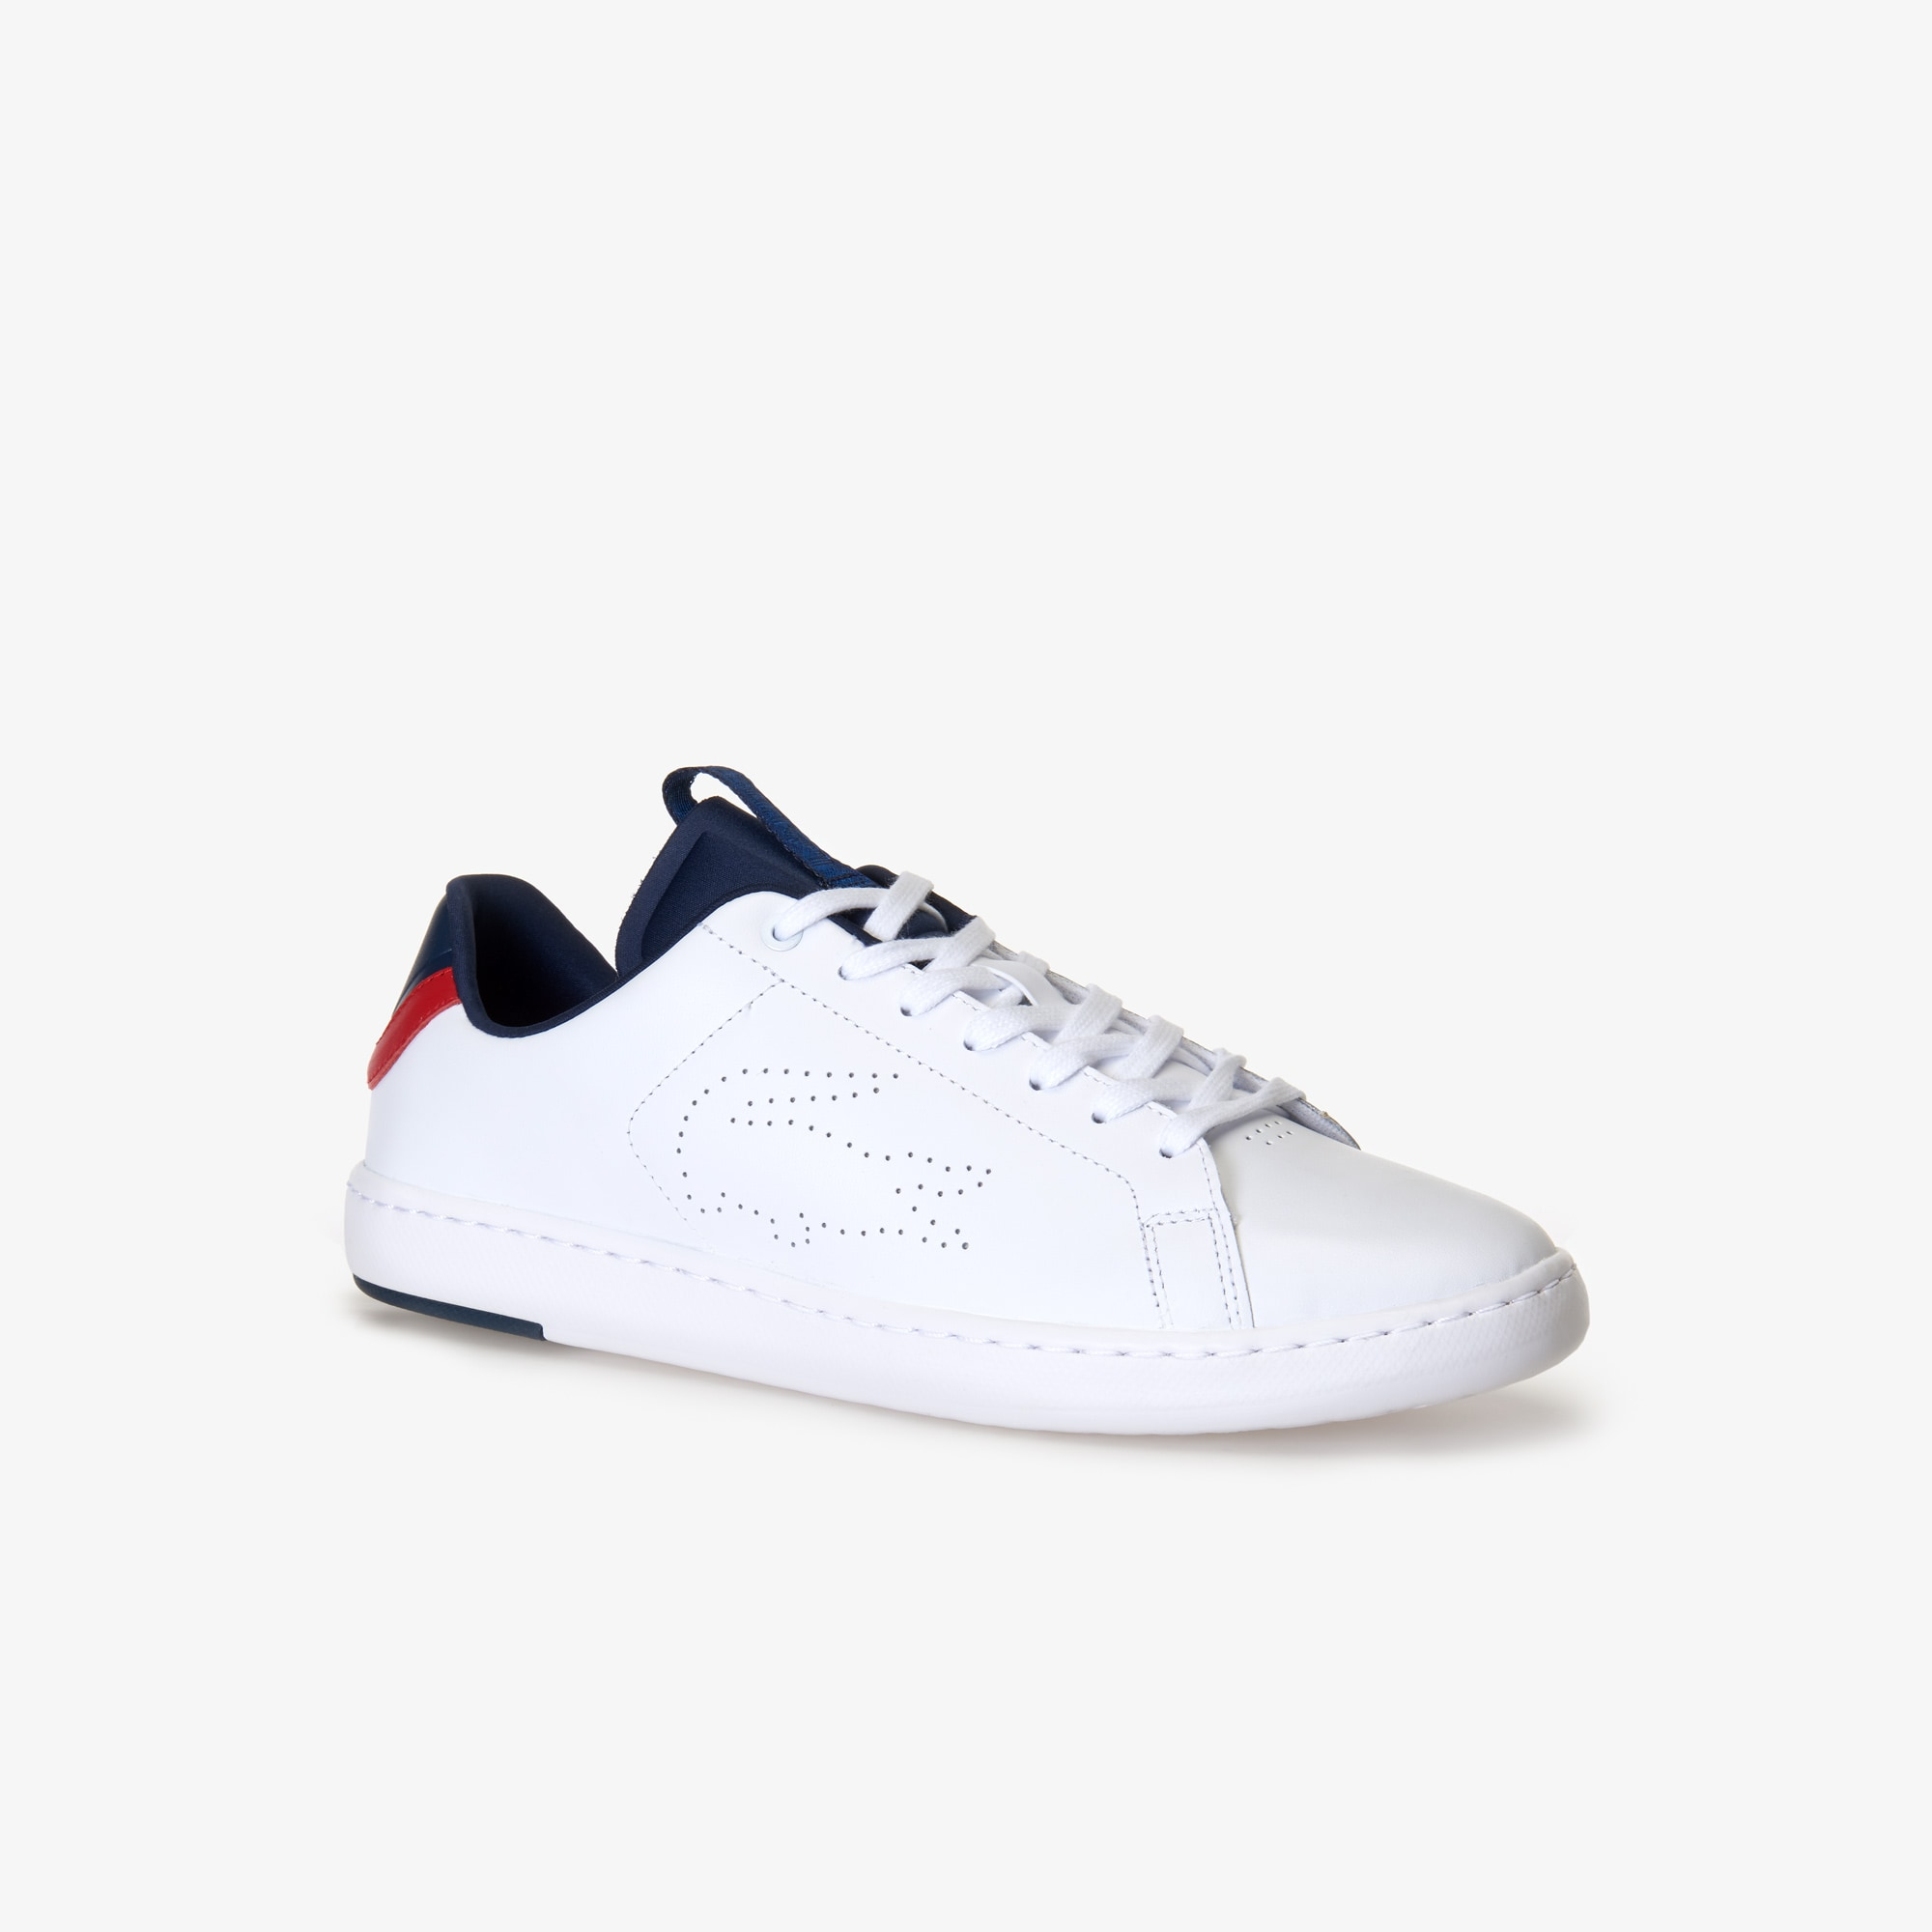 922500d1328f Men s Carnaby Evo Lightweight Leather Trainers. £80.00. + 1 color